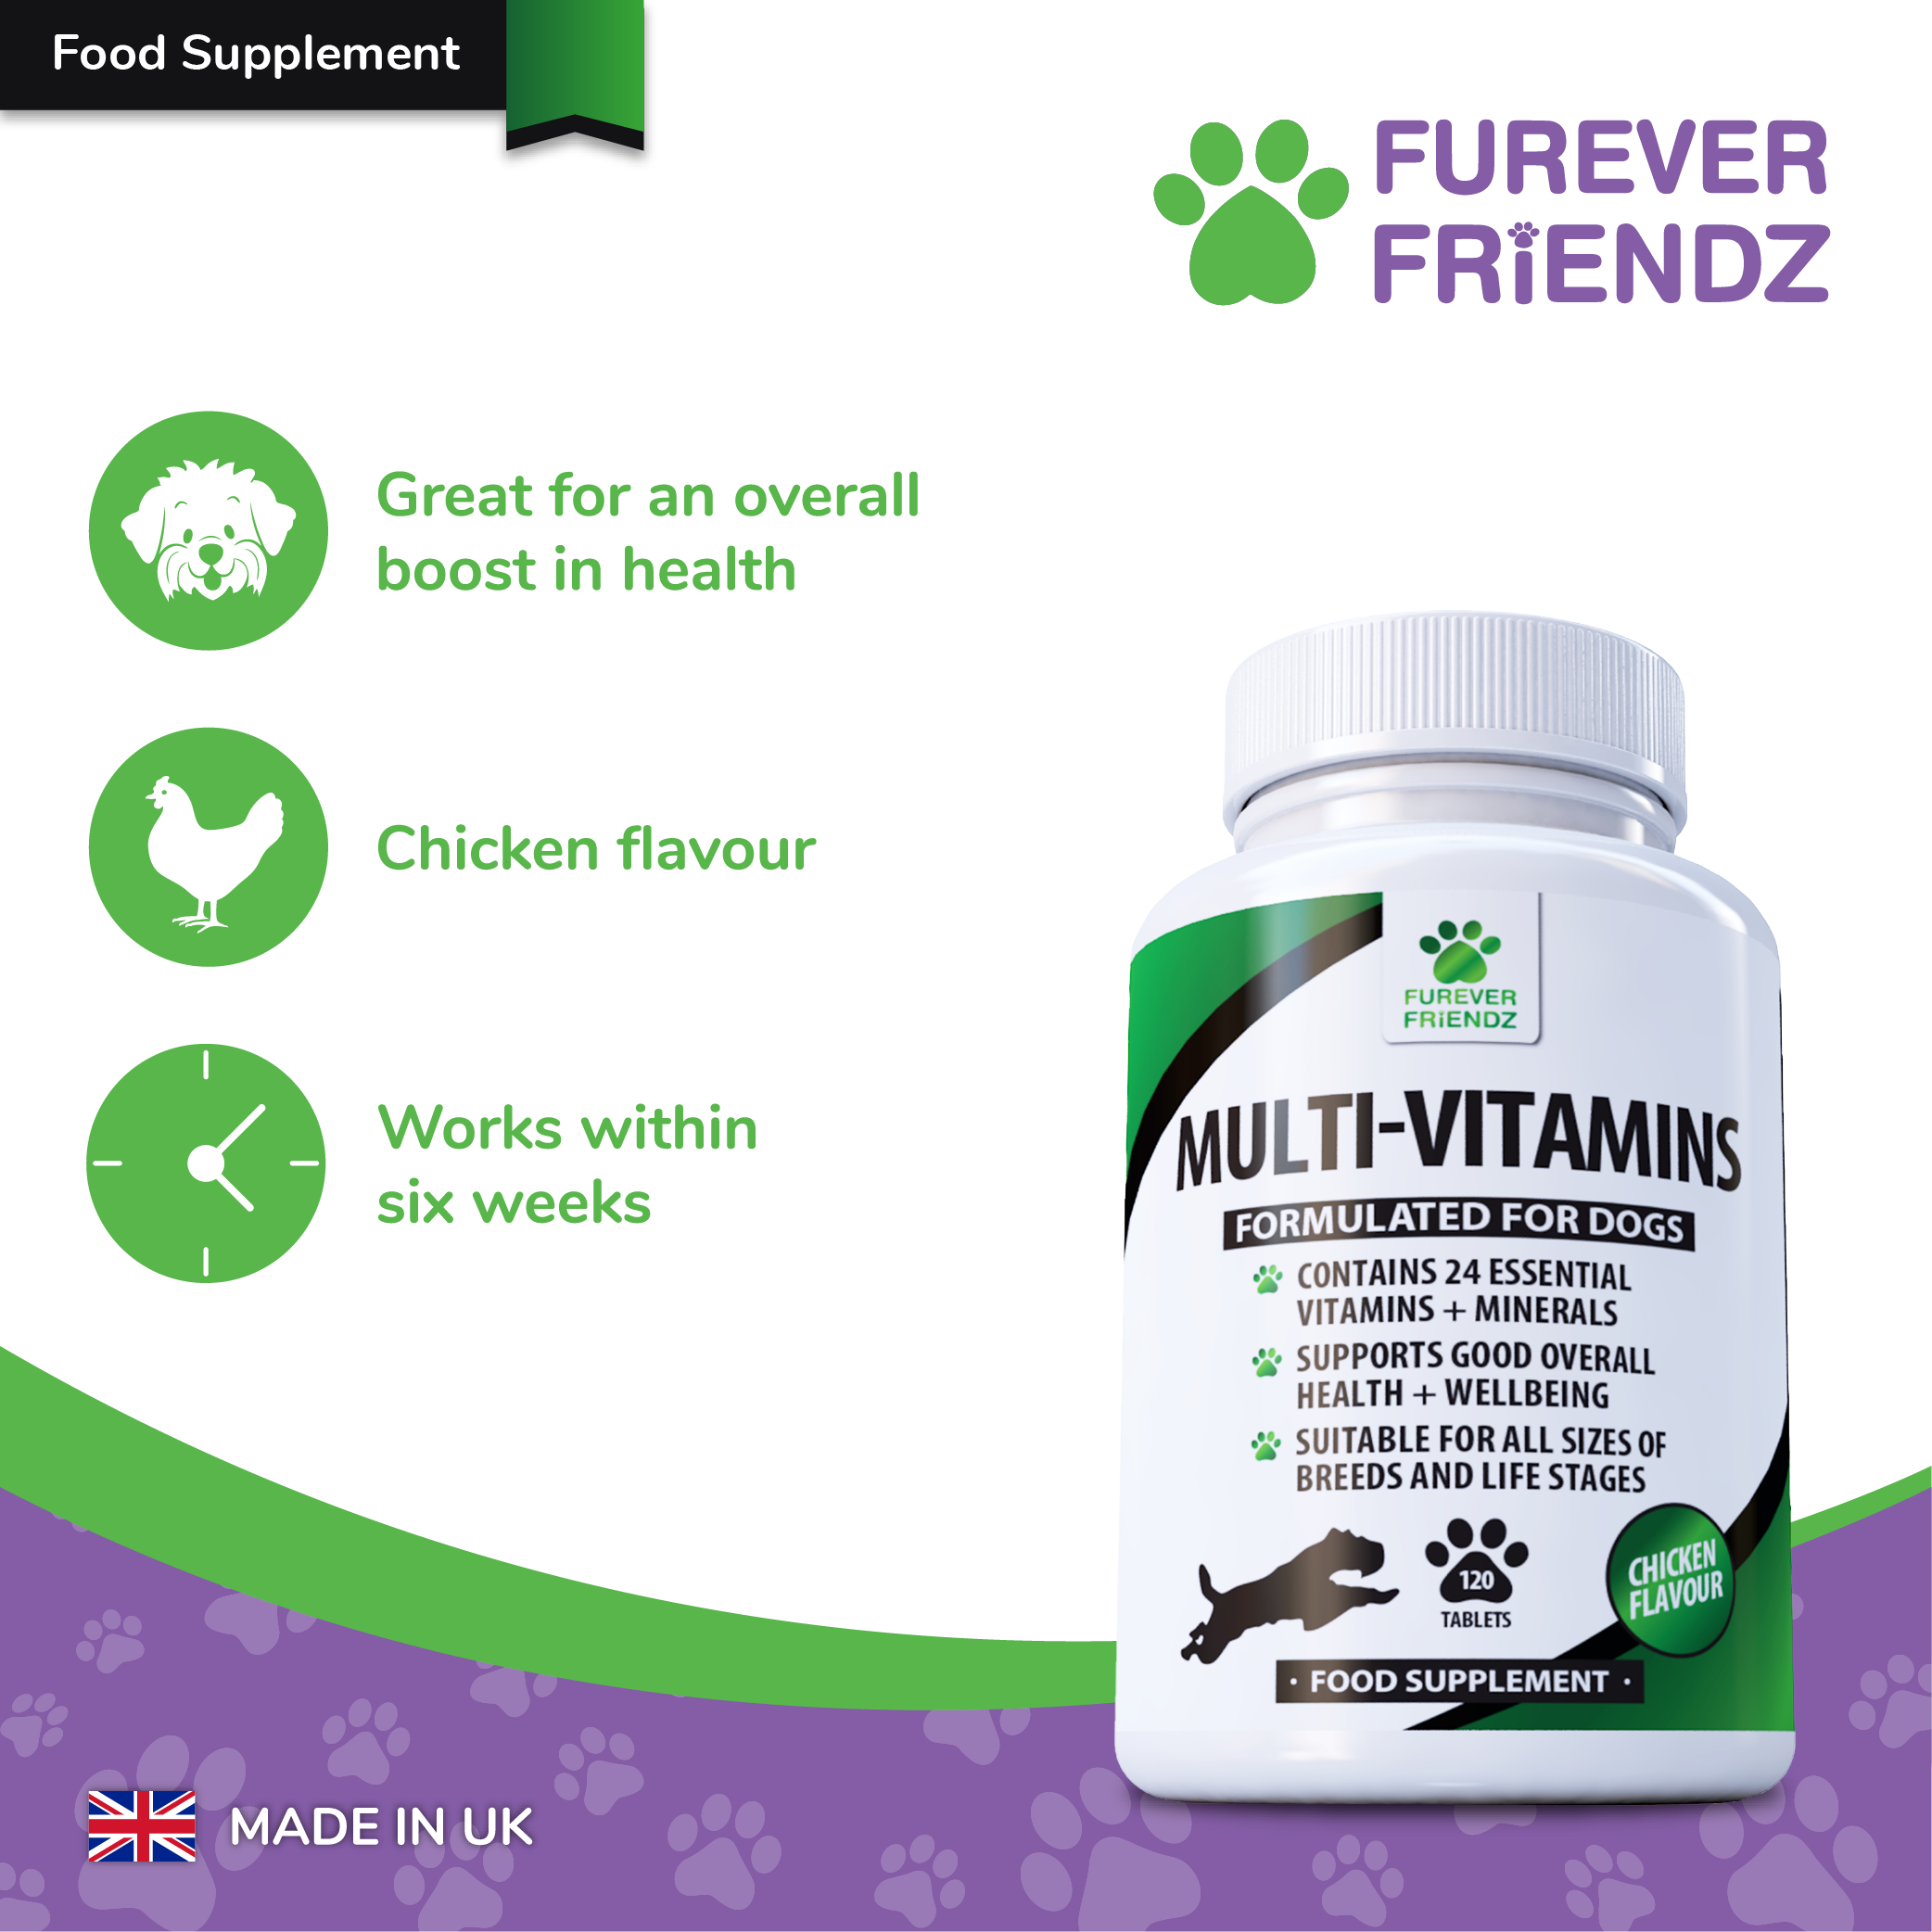 Daily Multi-Vitamins for Dogs: Overall Health & Well-Being